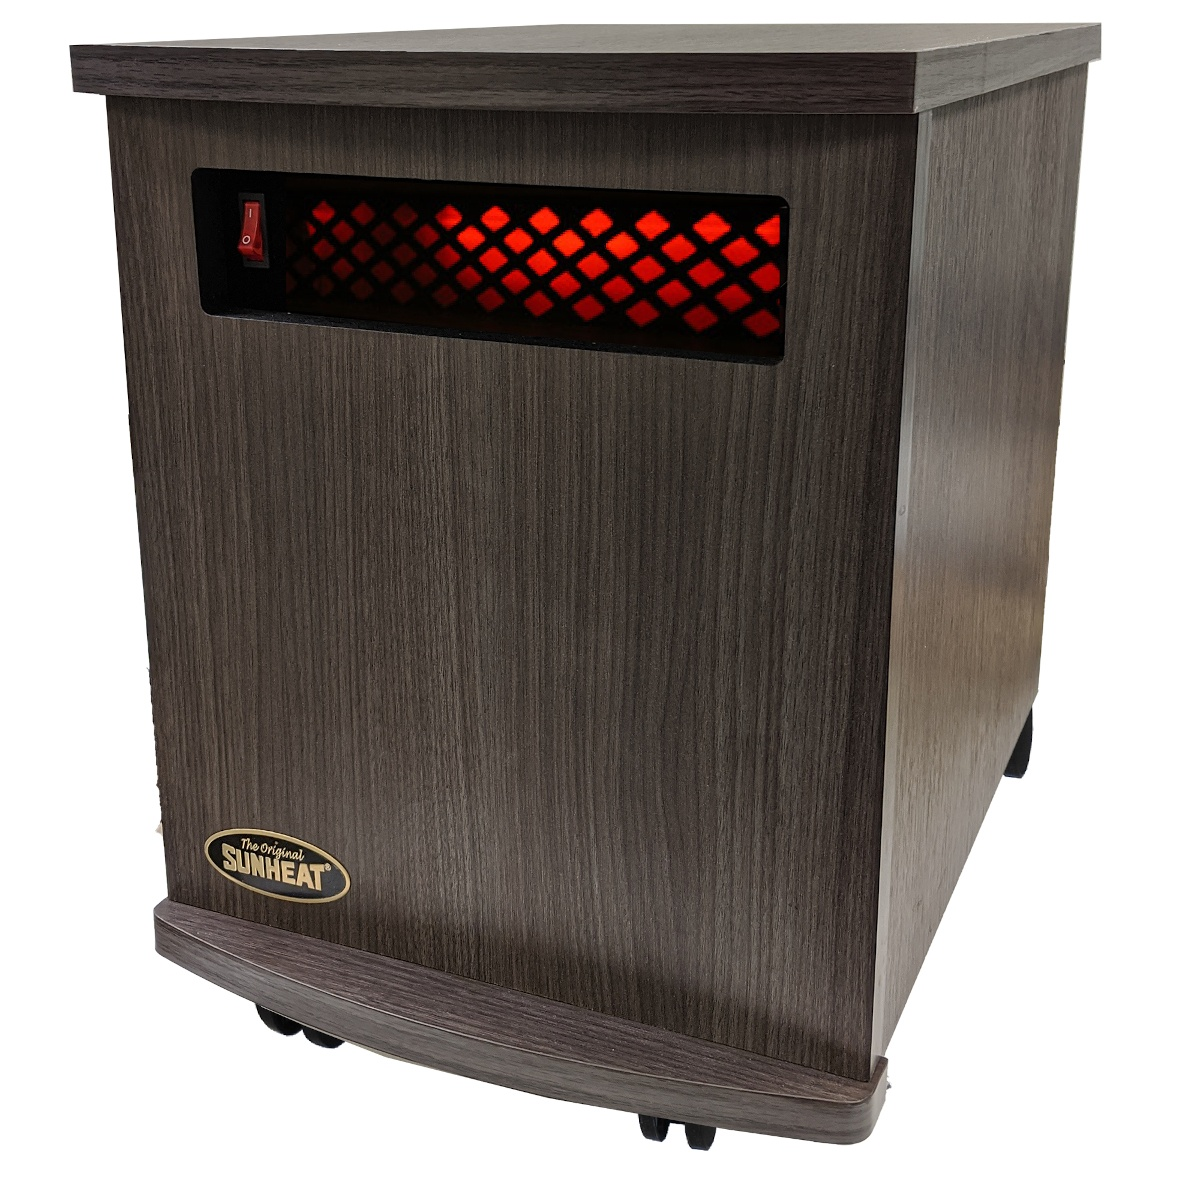 American Made Infrared Cabinet Portable Heater on Rollers by SUNHEAT USA1500-M Charcoal Grey Walnut Finish